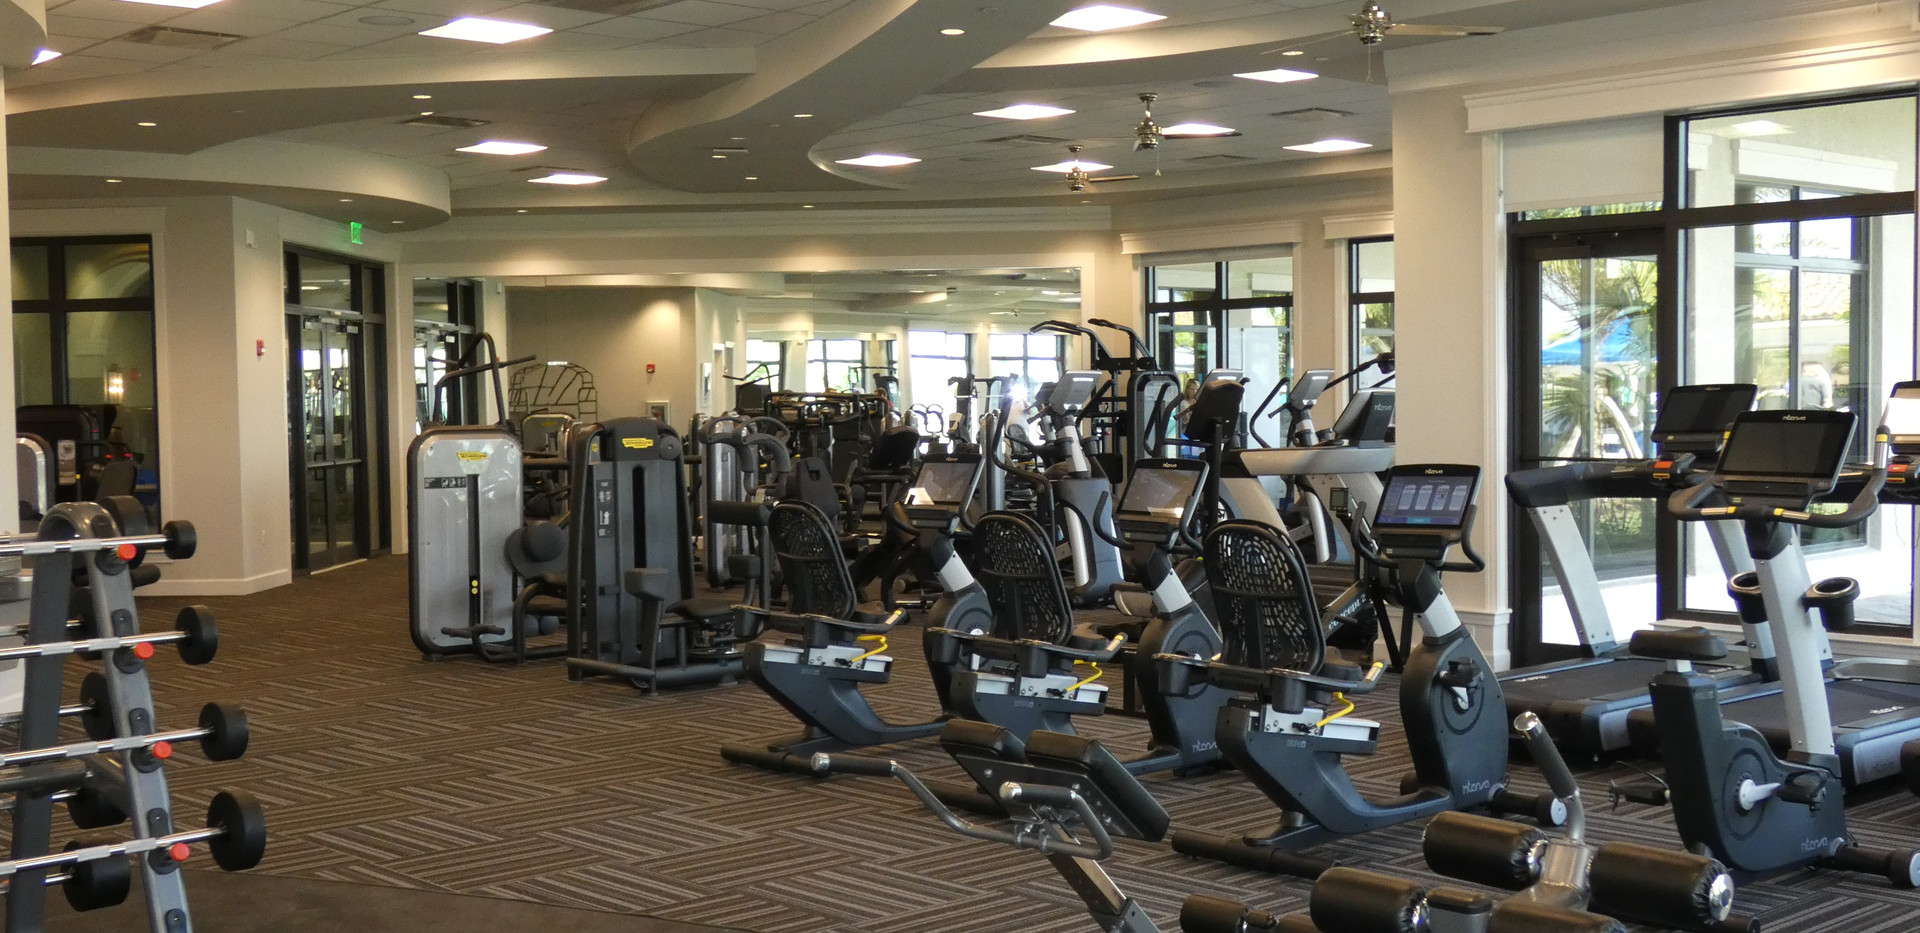 Lakewood National club house fitness center